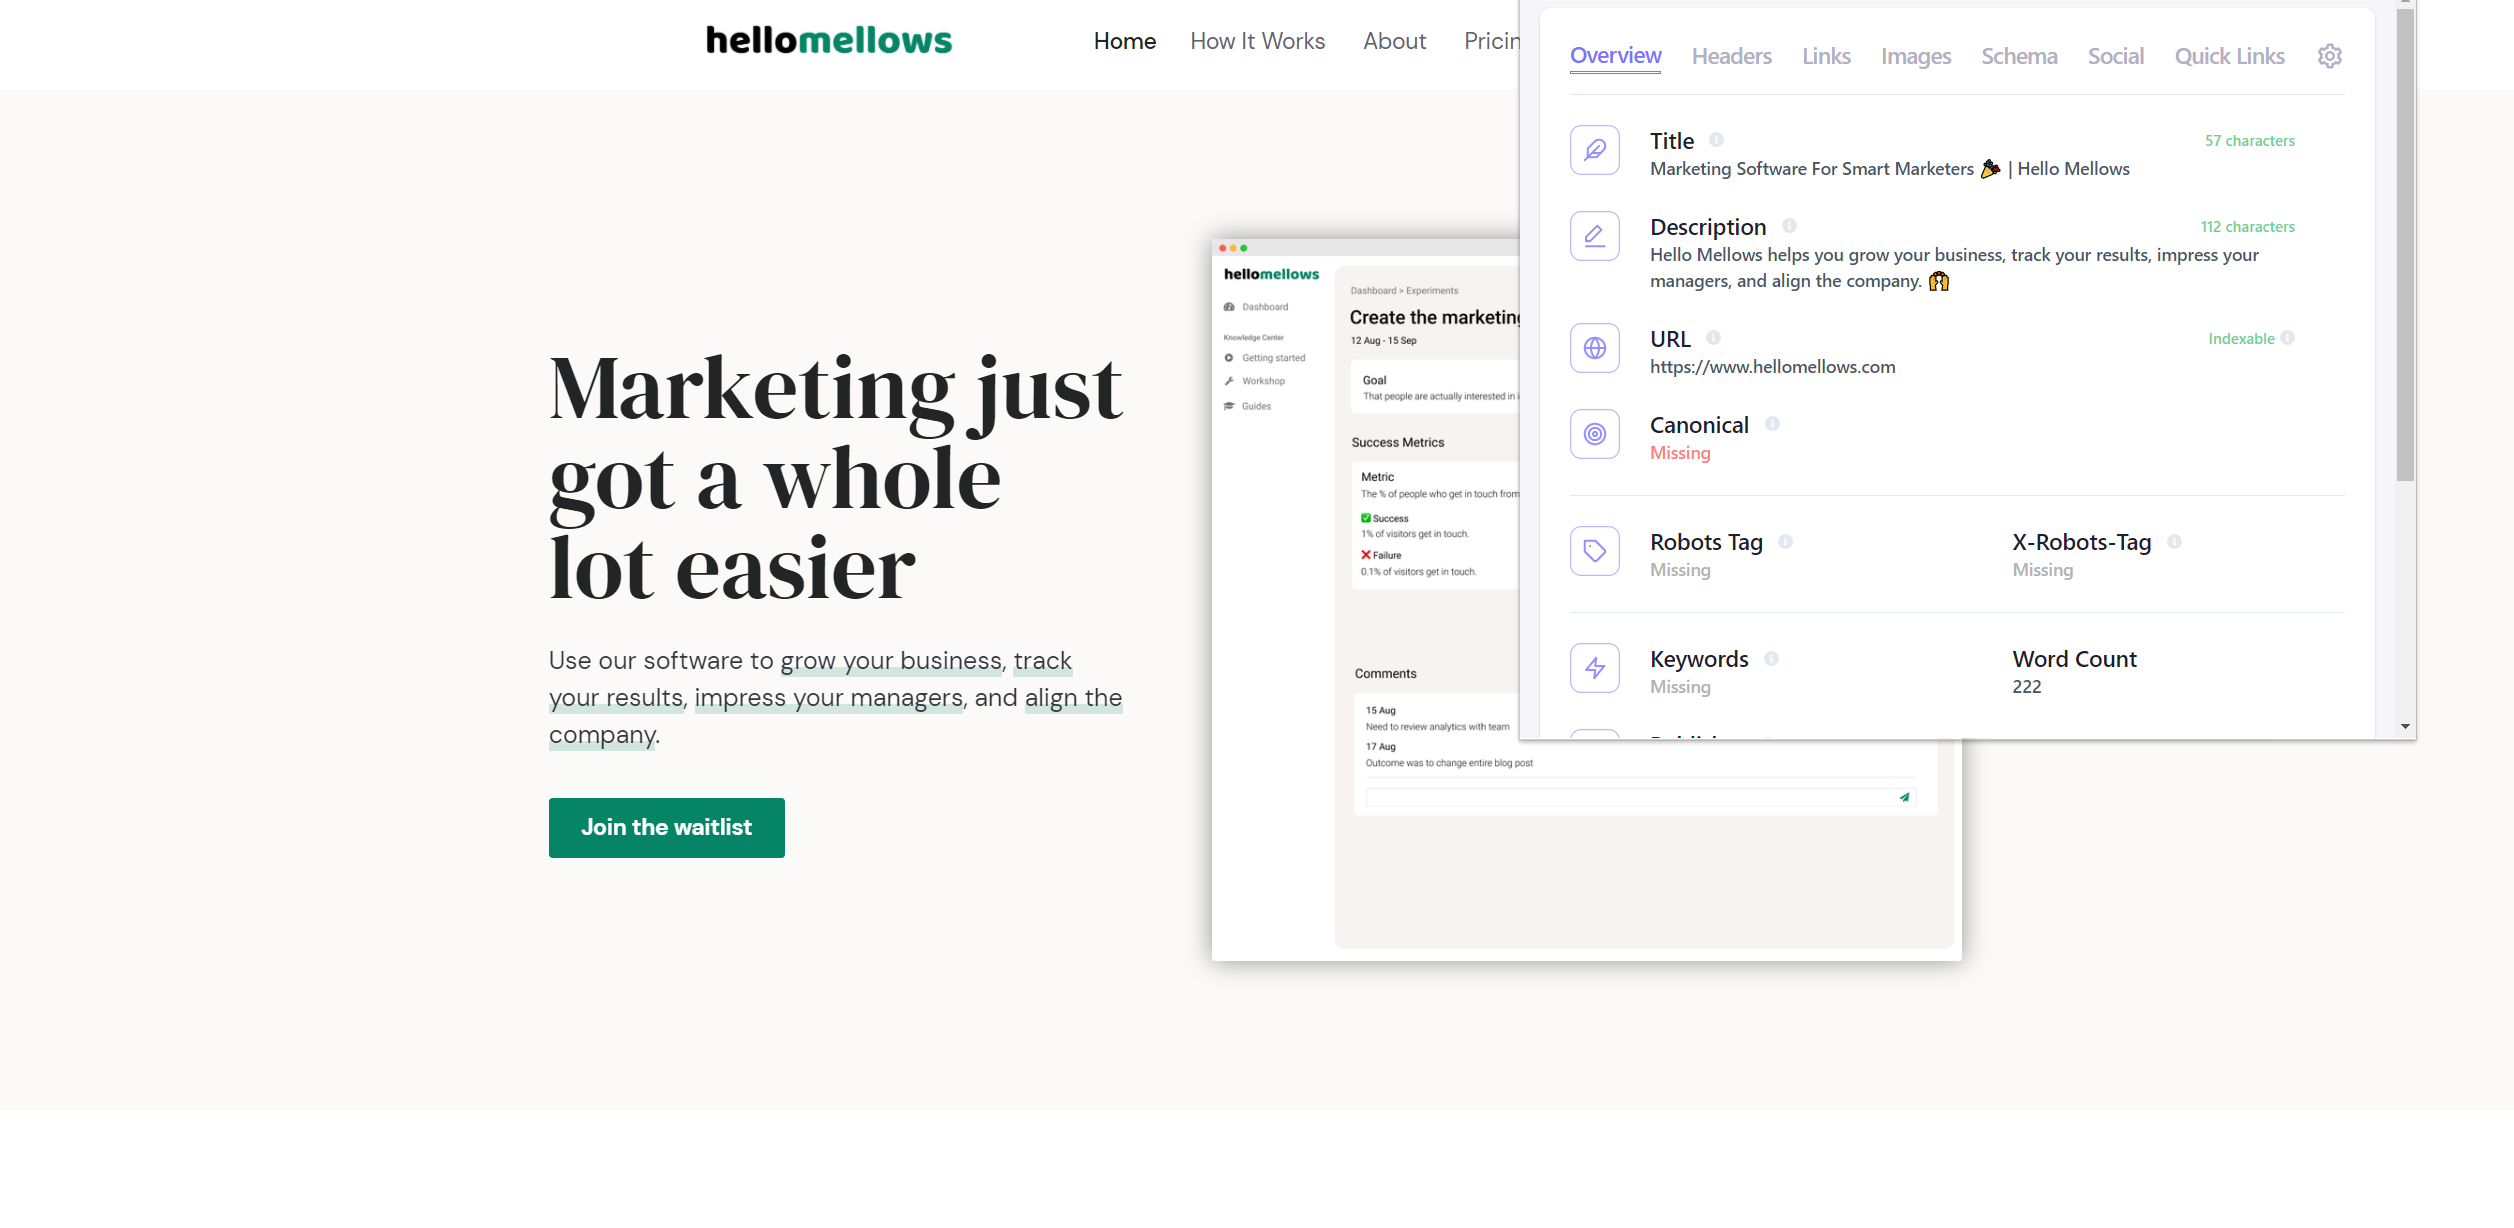 The Hello Mellows homepage with Detailed's SEO extension